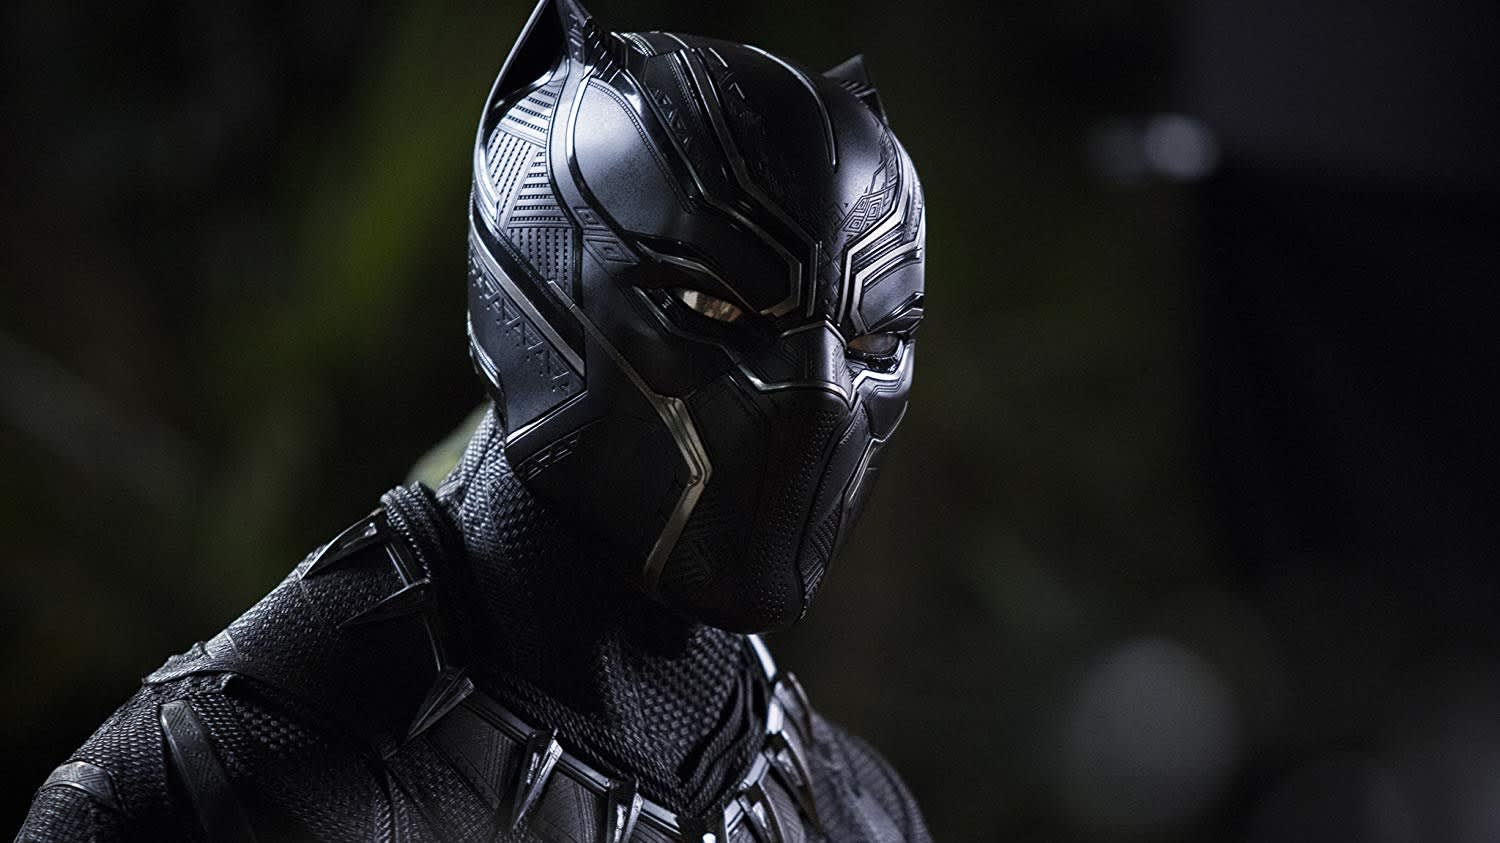 Marvel's 'Black Panther' sequel will start shooting in July, report says